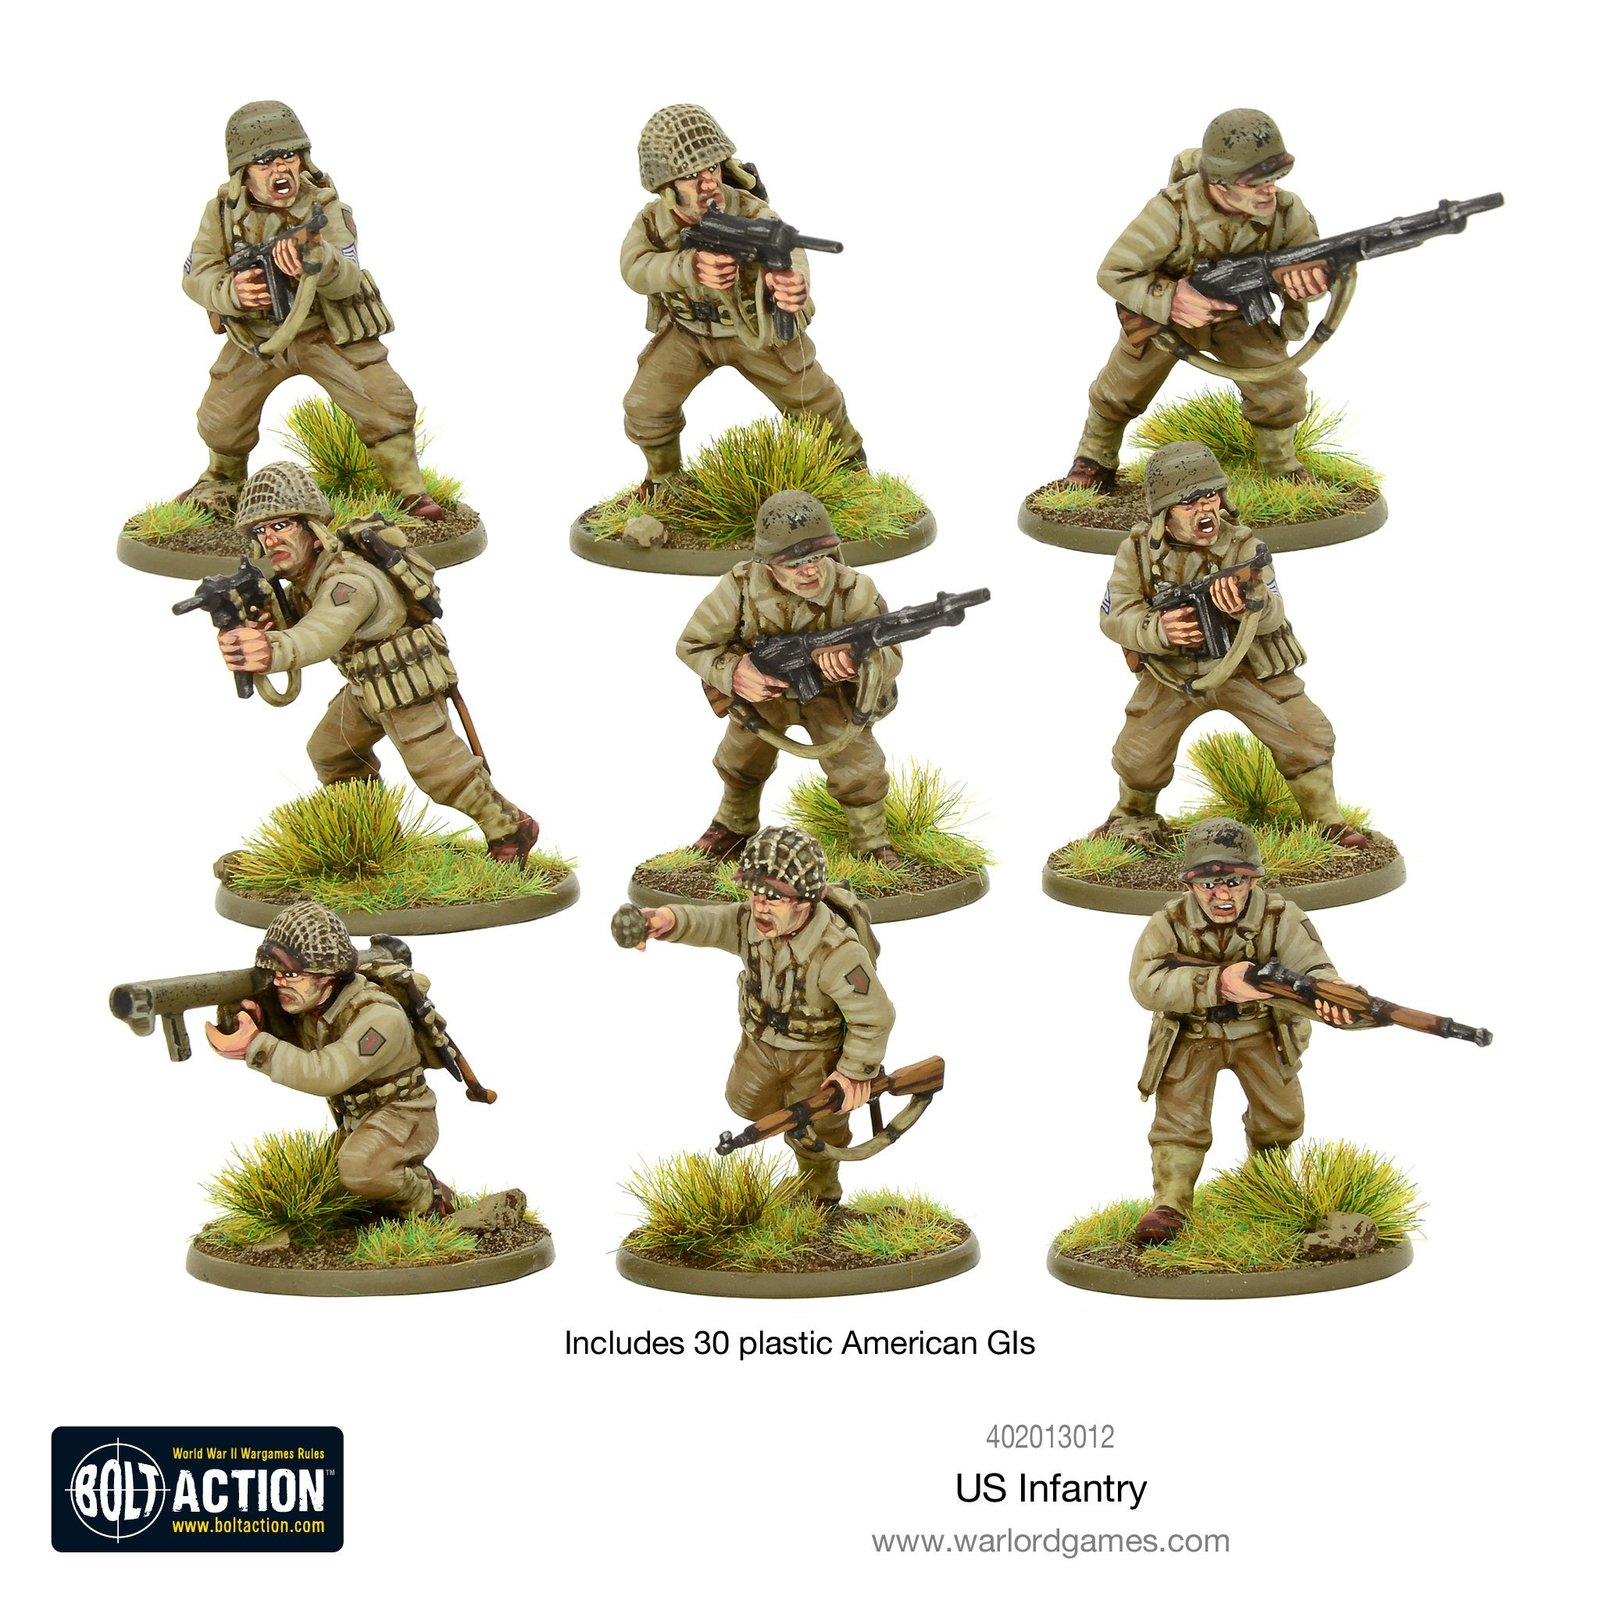 Bolt Action: US Infantry - WWII American GIs image